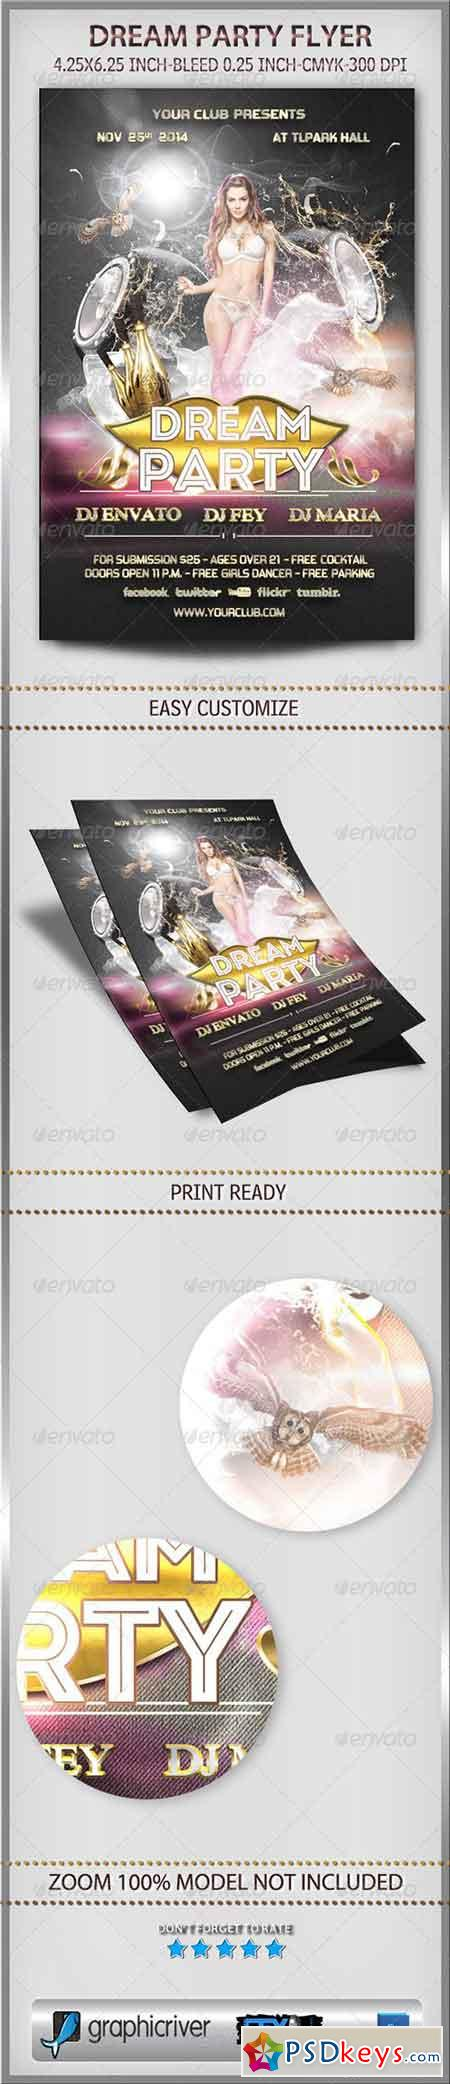 Dream Party Flyer 6035899